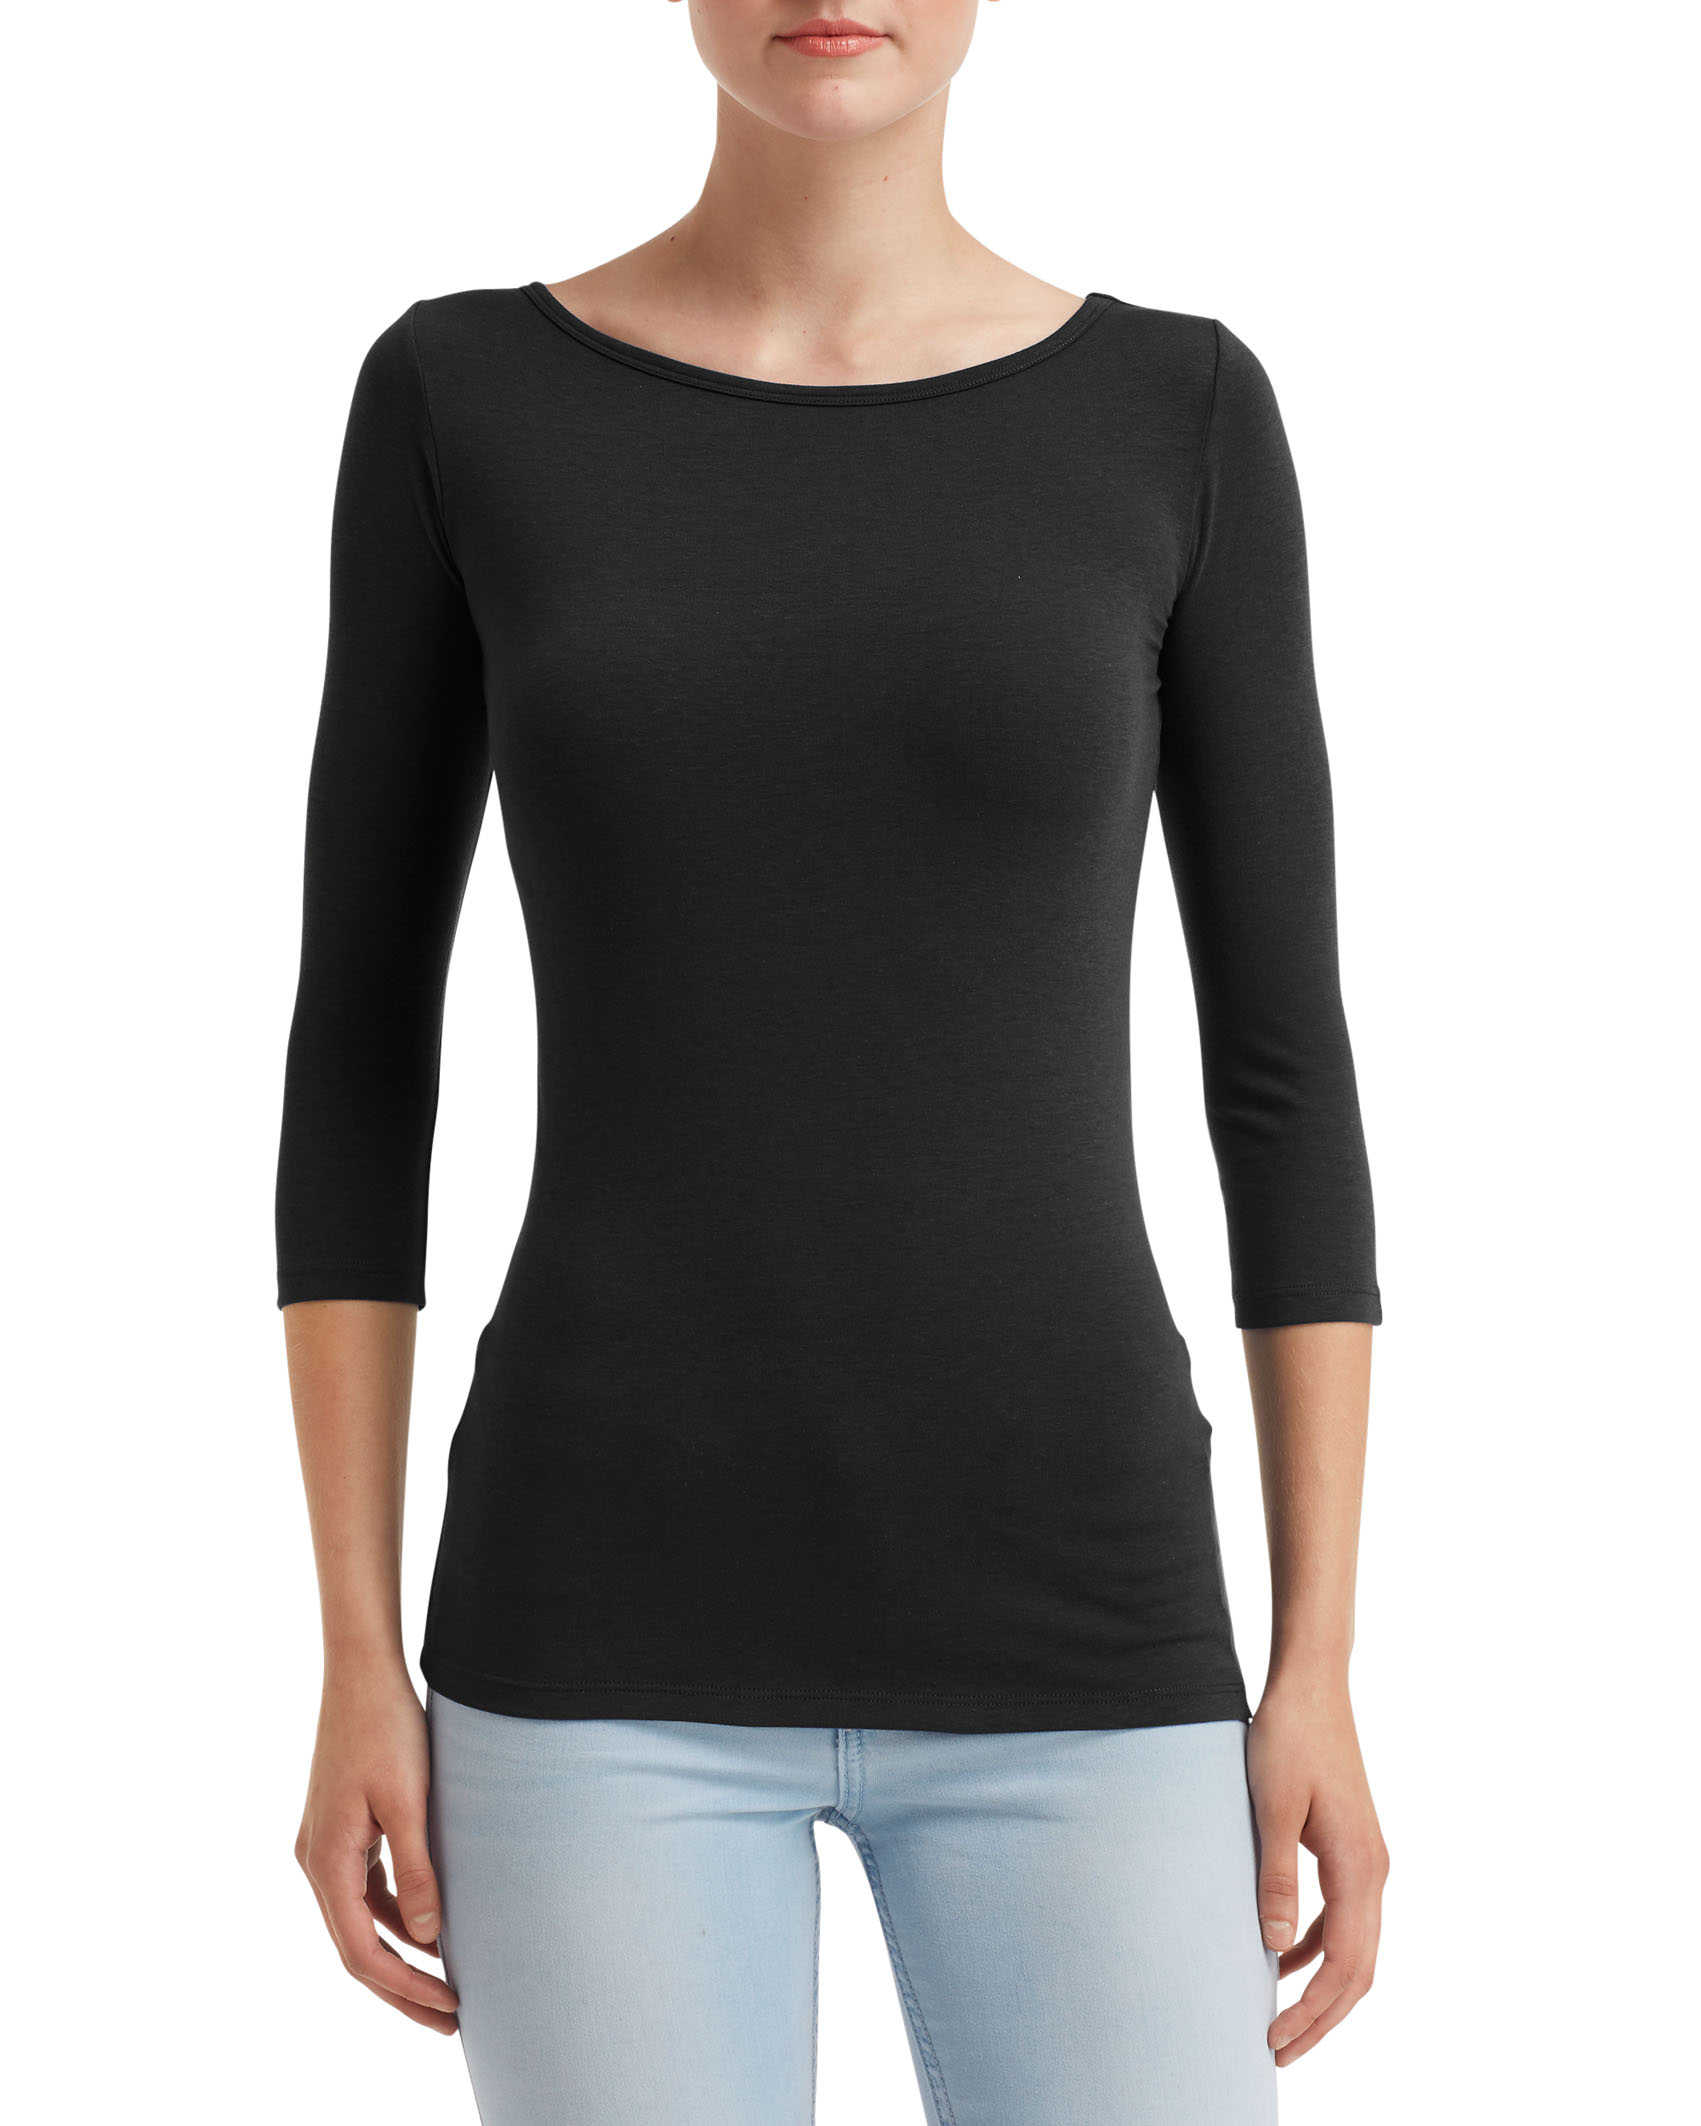 Anvil T-shirt Stretch 3/4 Sleeve for her